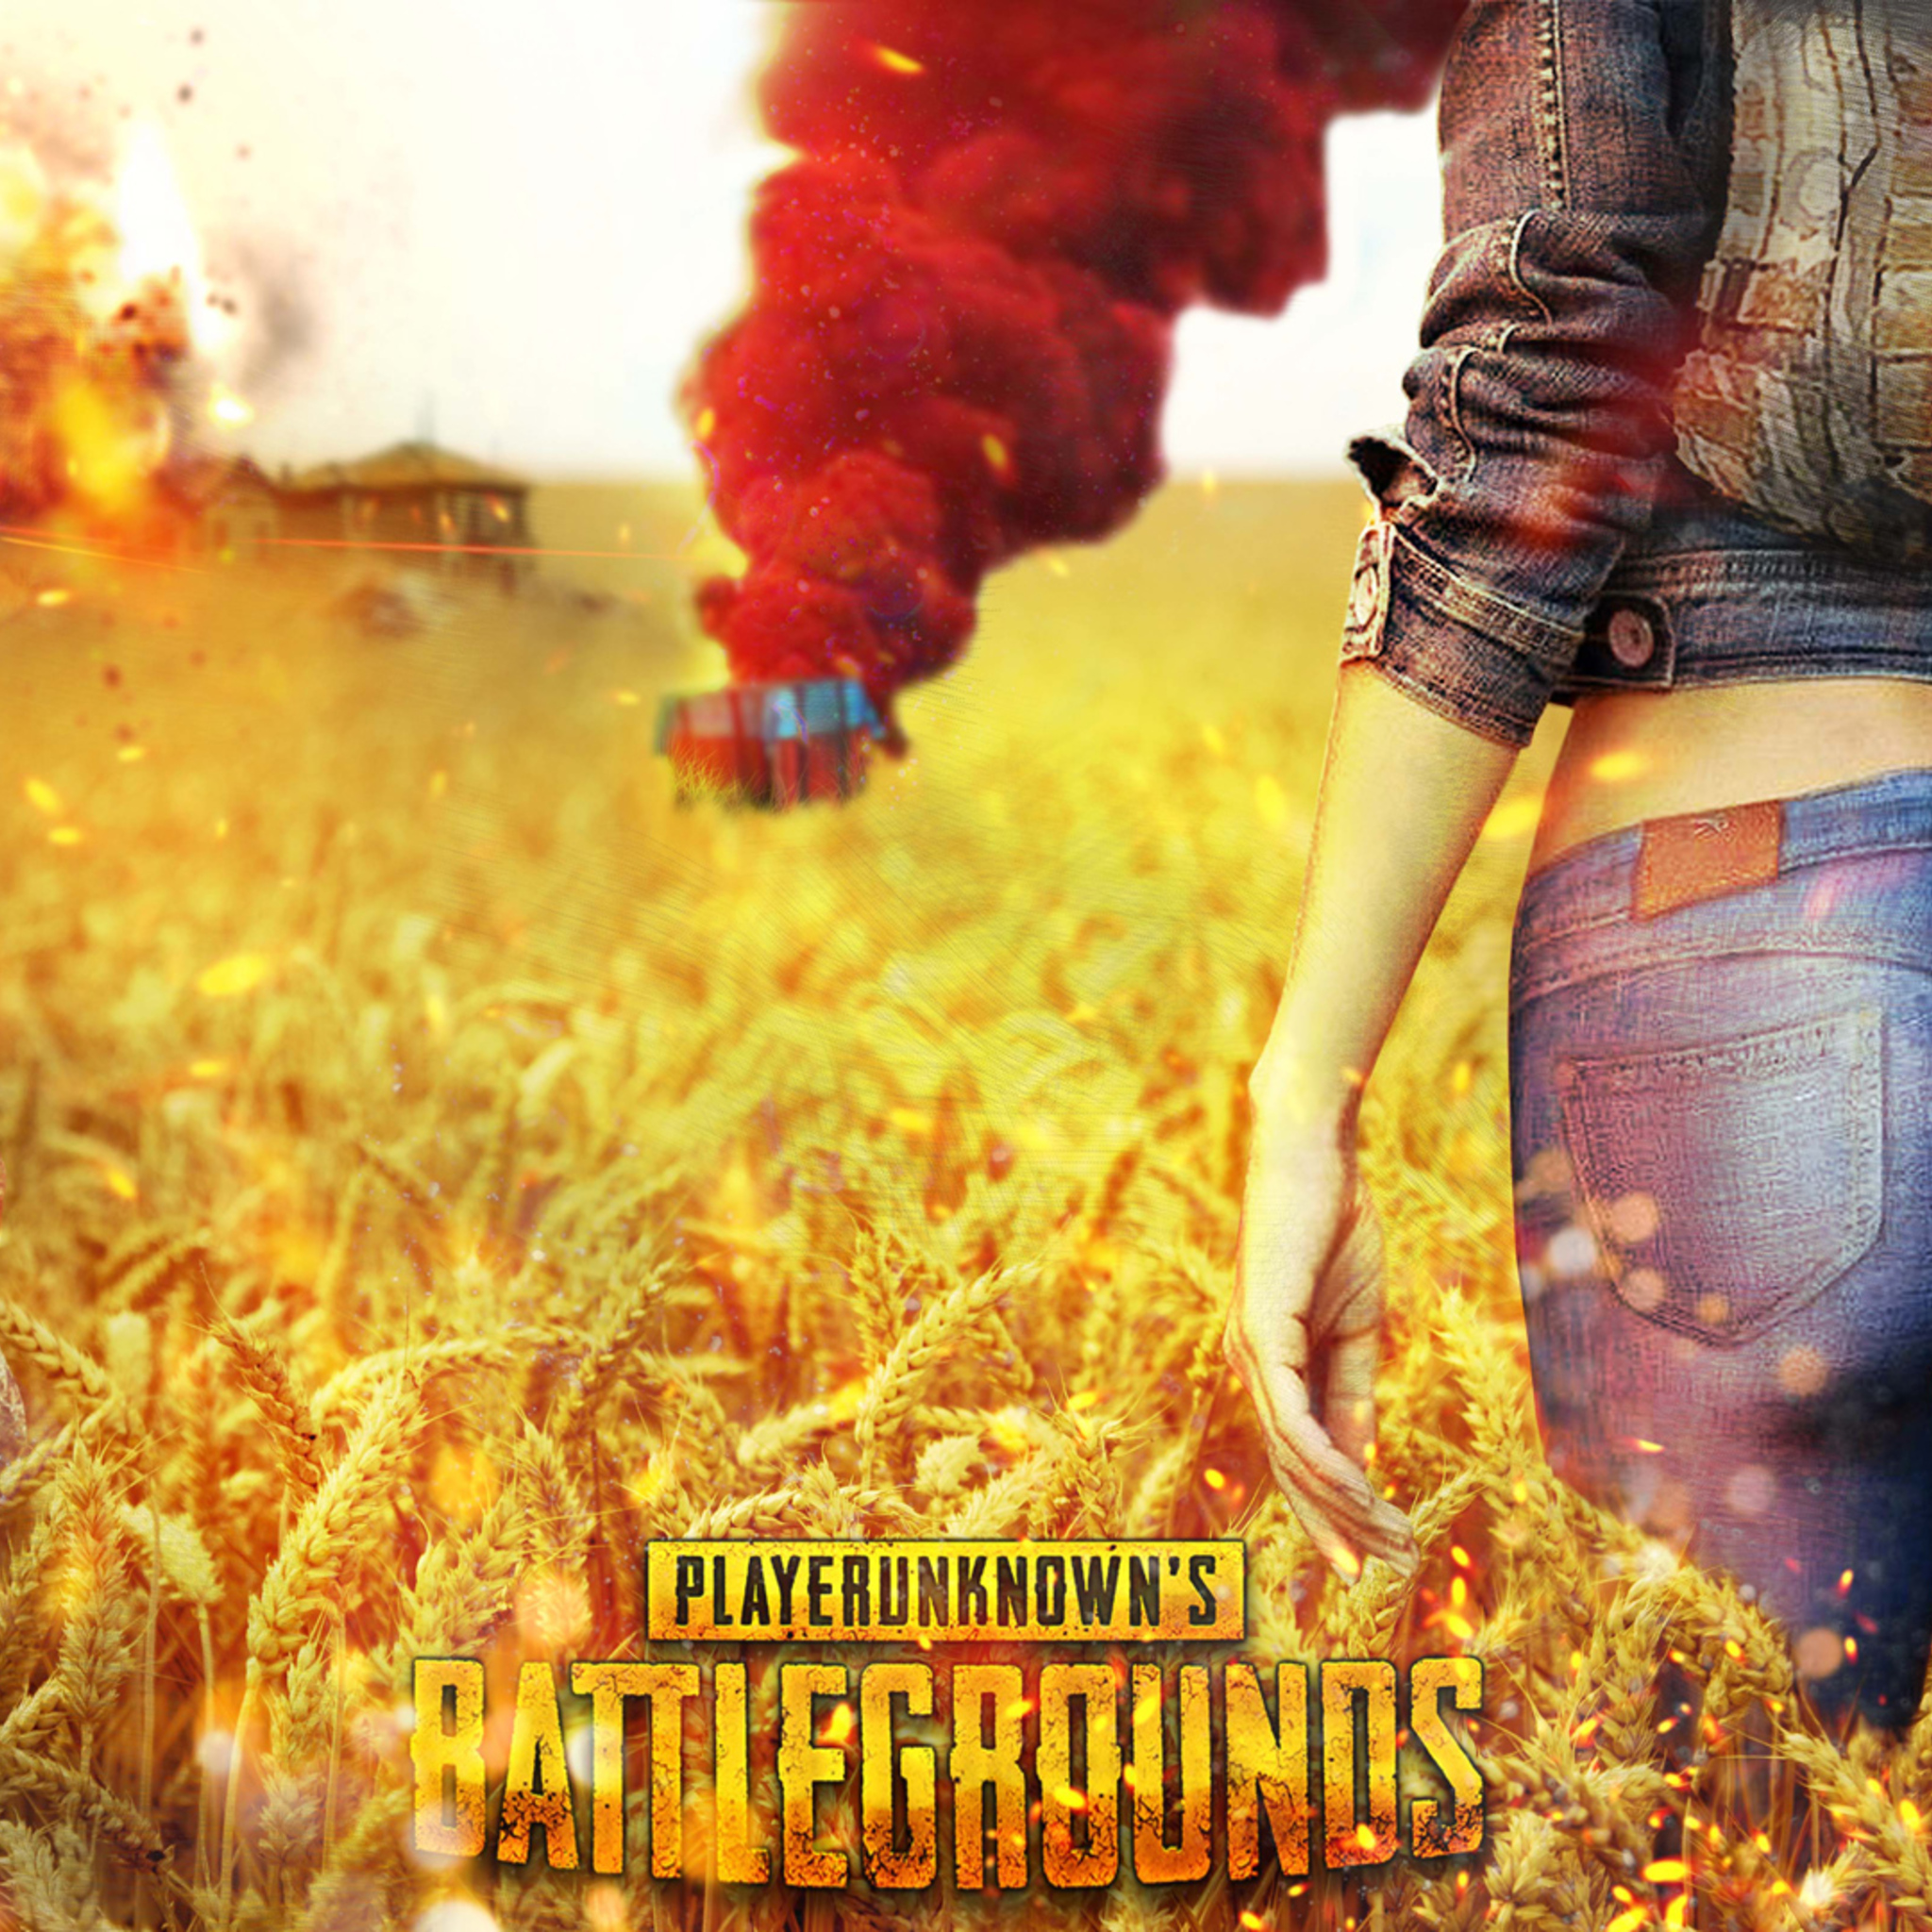 2048x2048 Playerunknowns Battlegrounds 1080P Ipad Air HD